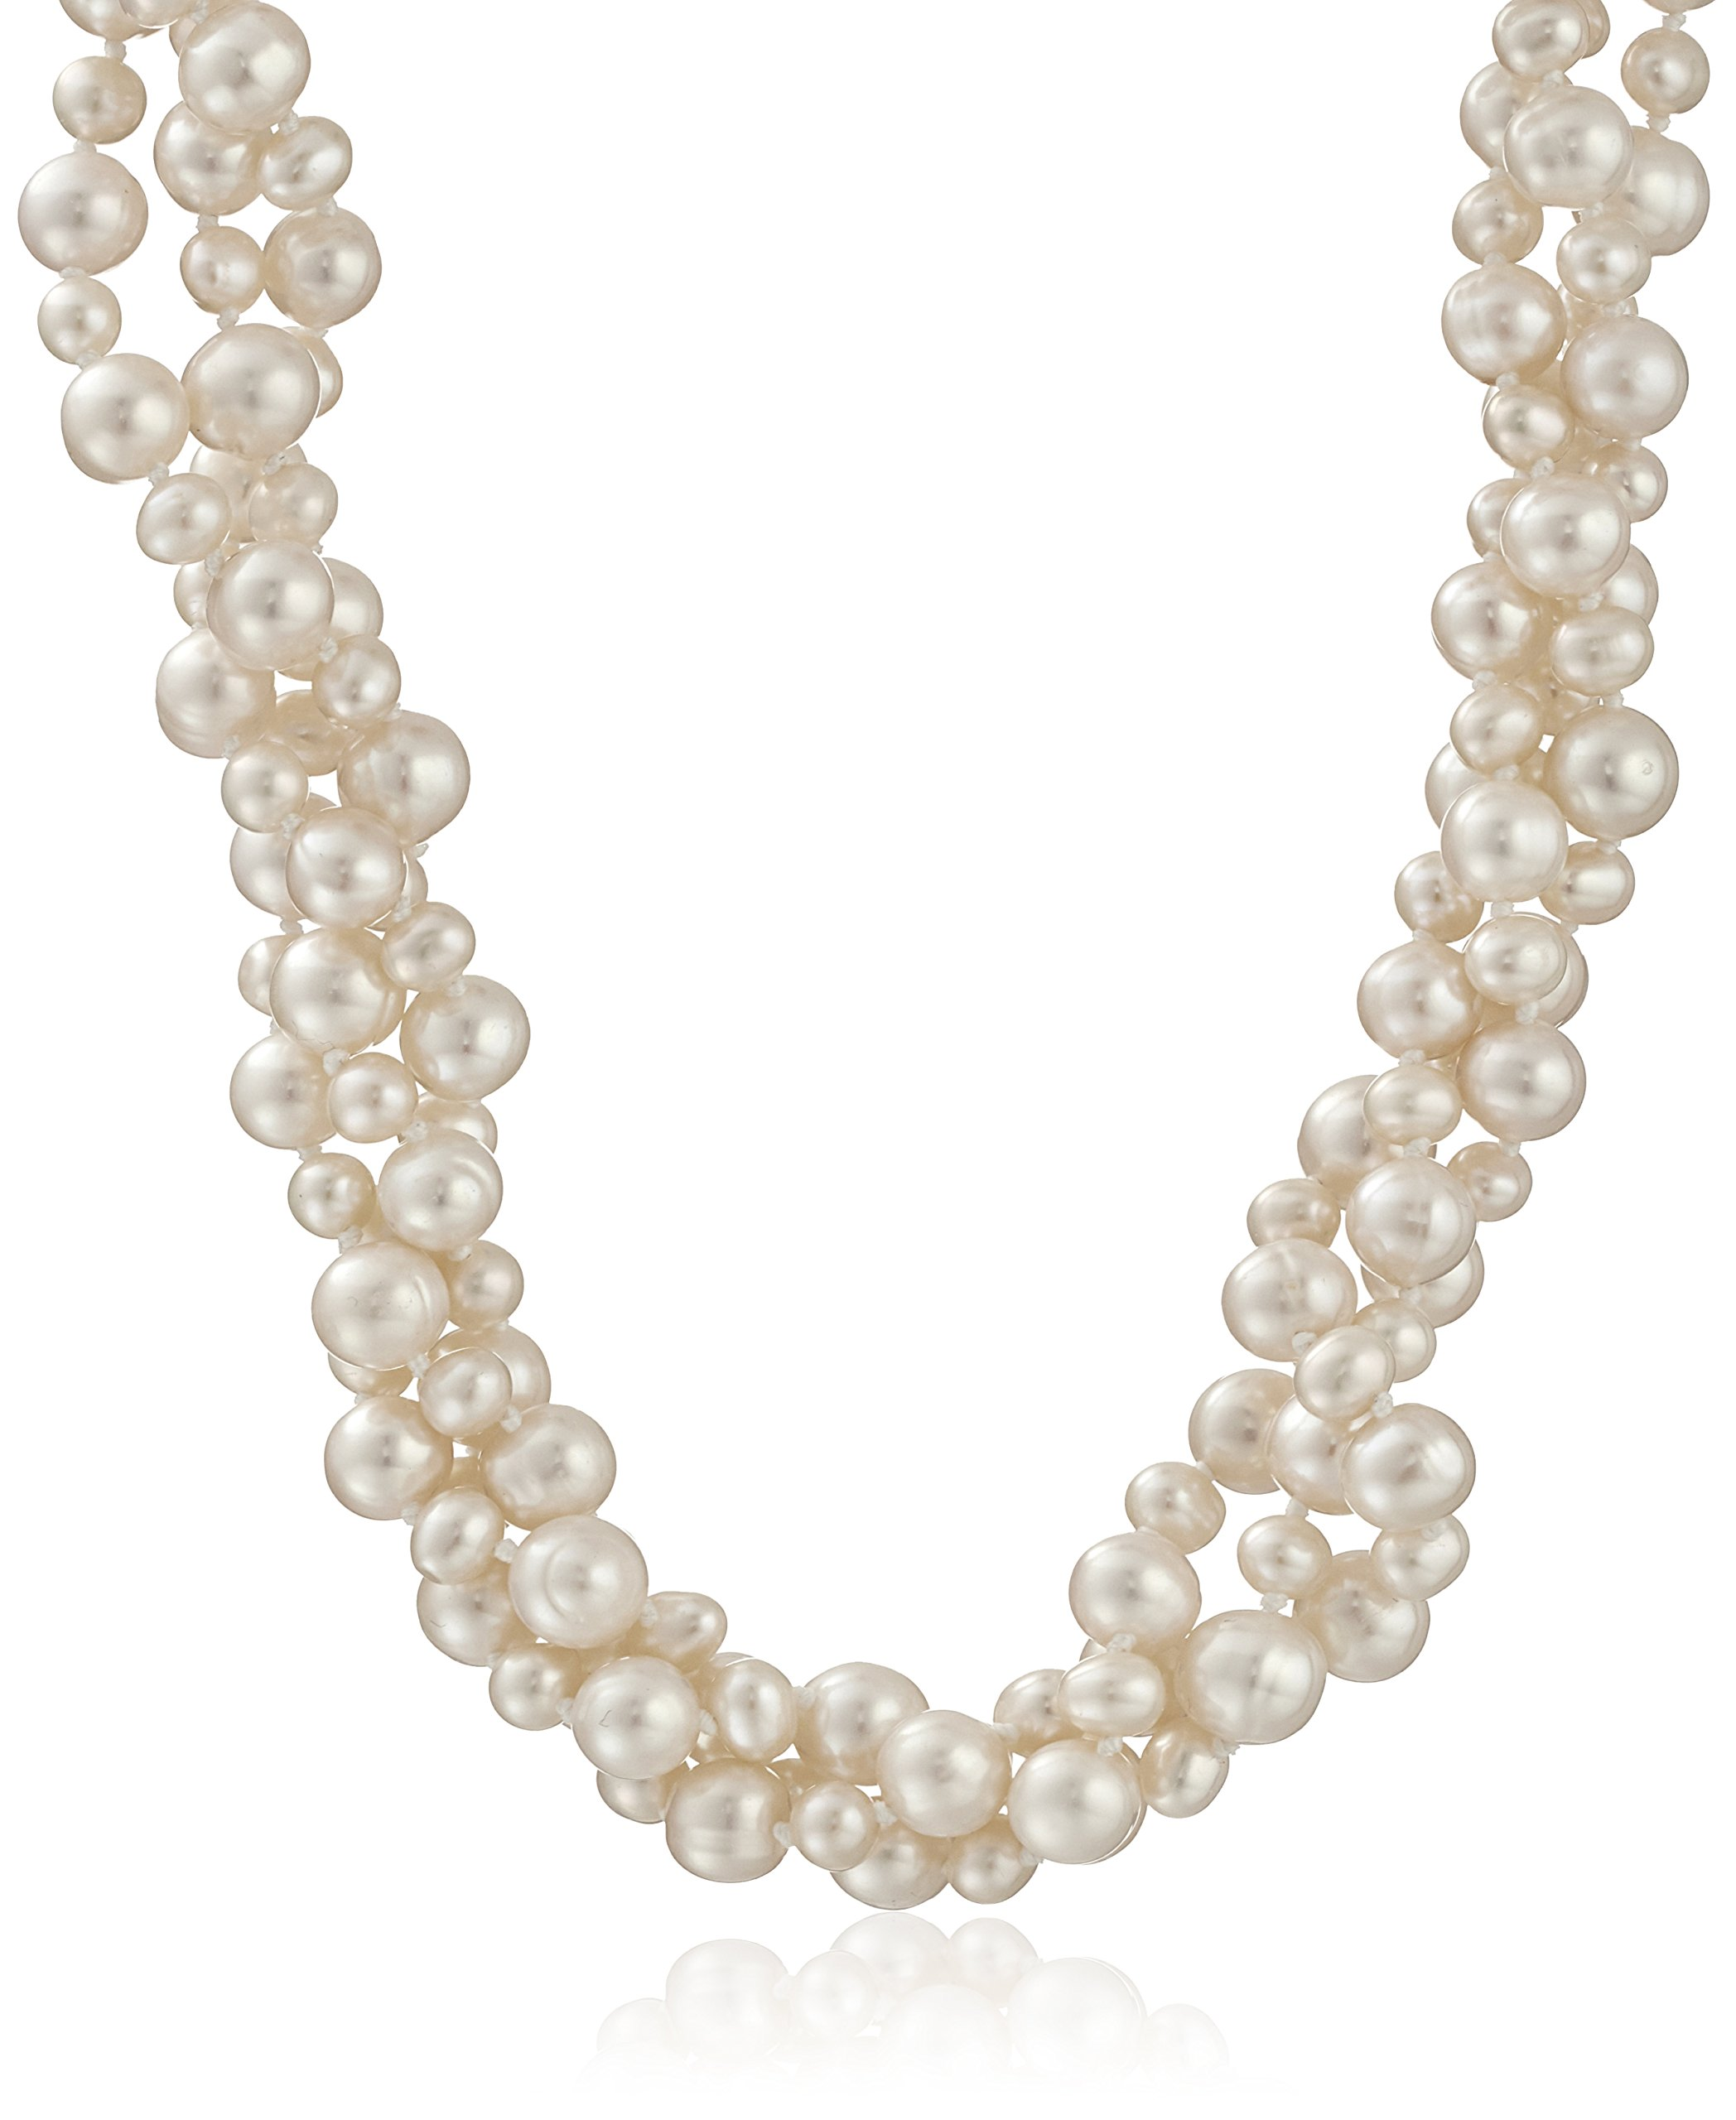 Sterling Silver 4-4.5mm and 8-8.5mm White Freshwater Cultured Pearl 3-rows Twisted Necklace, 18''